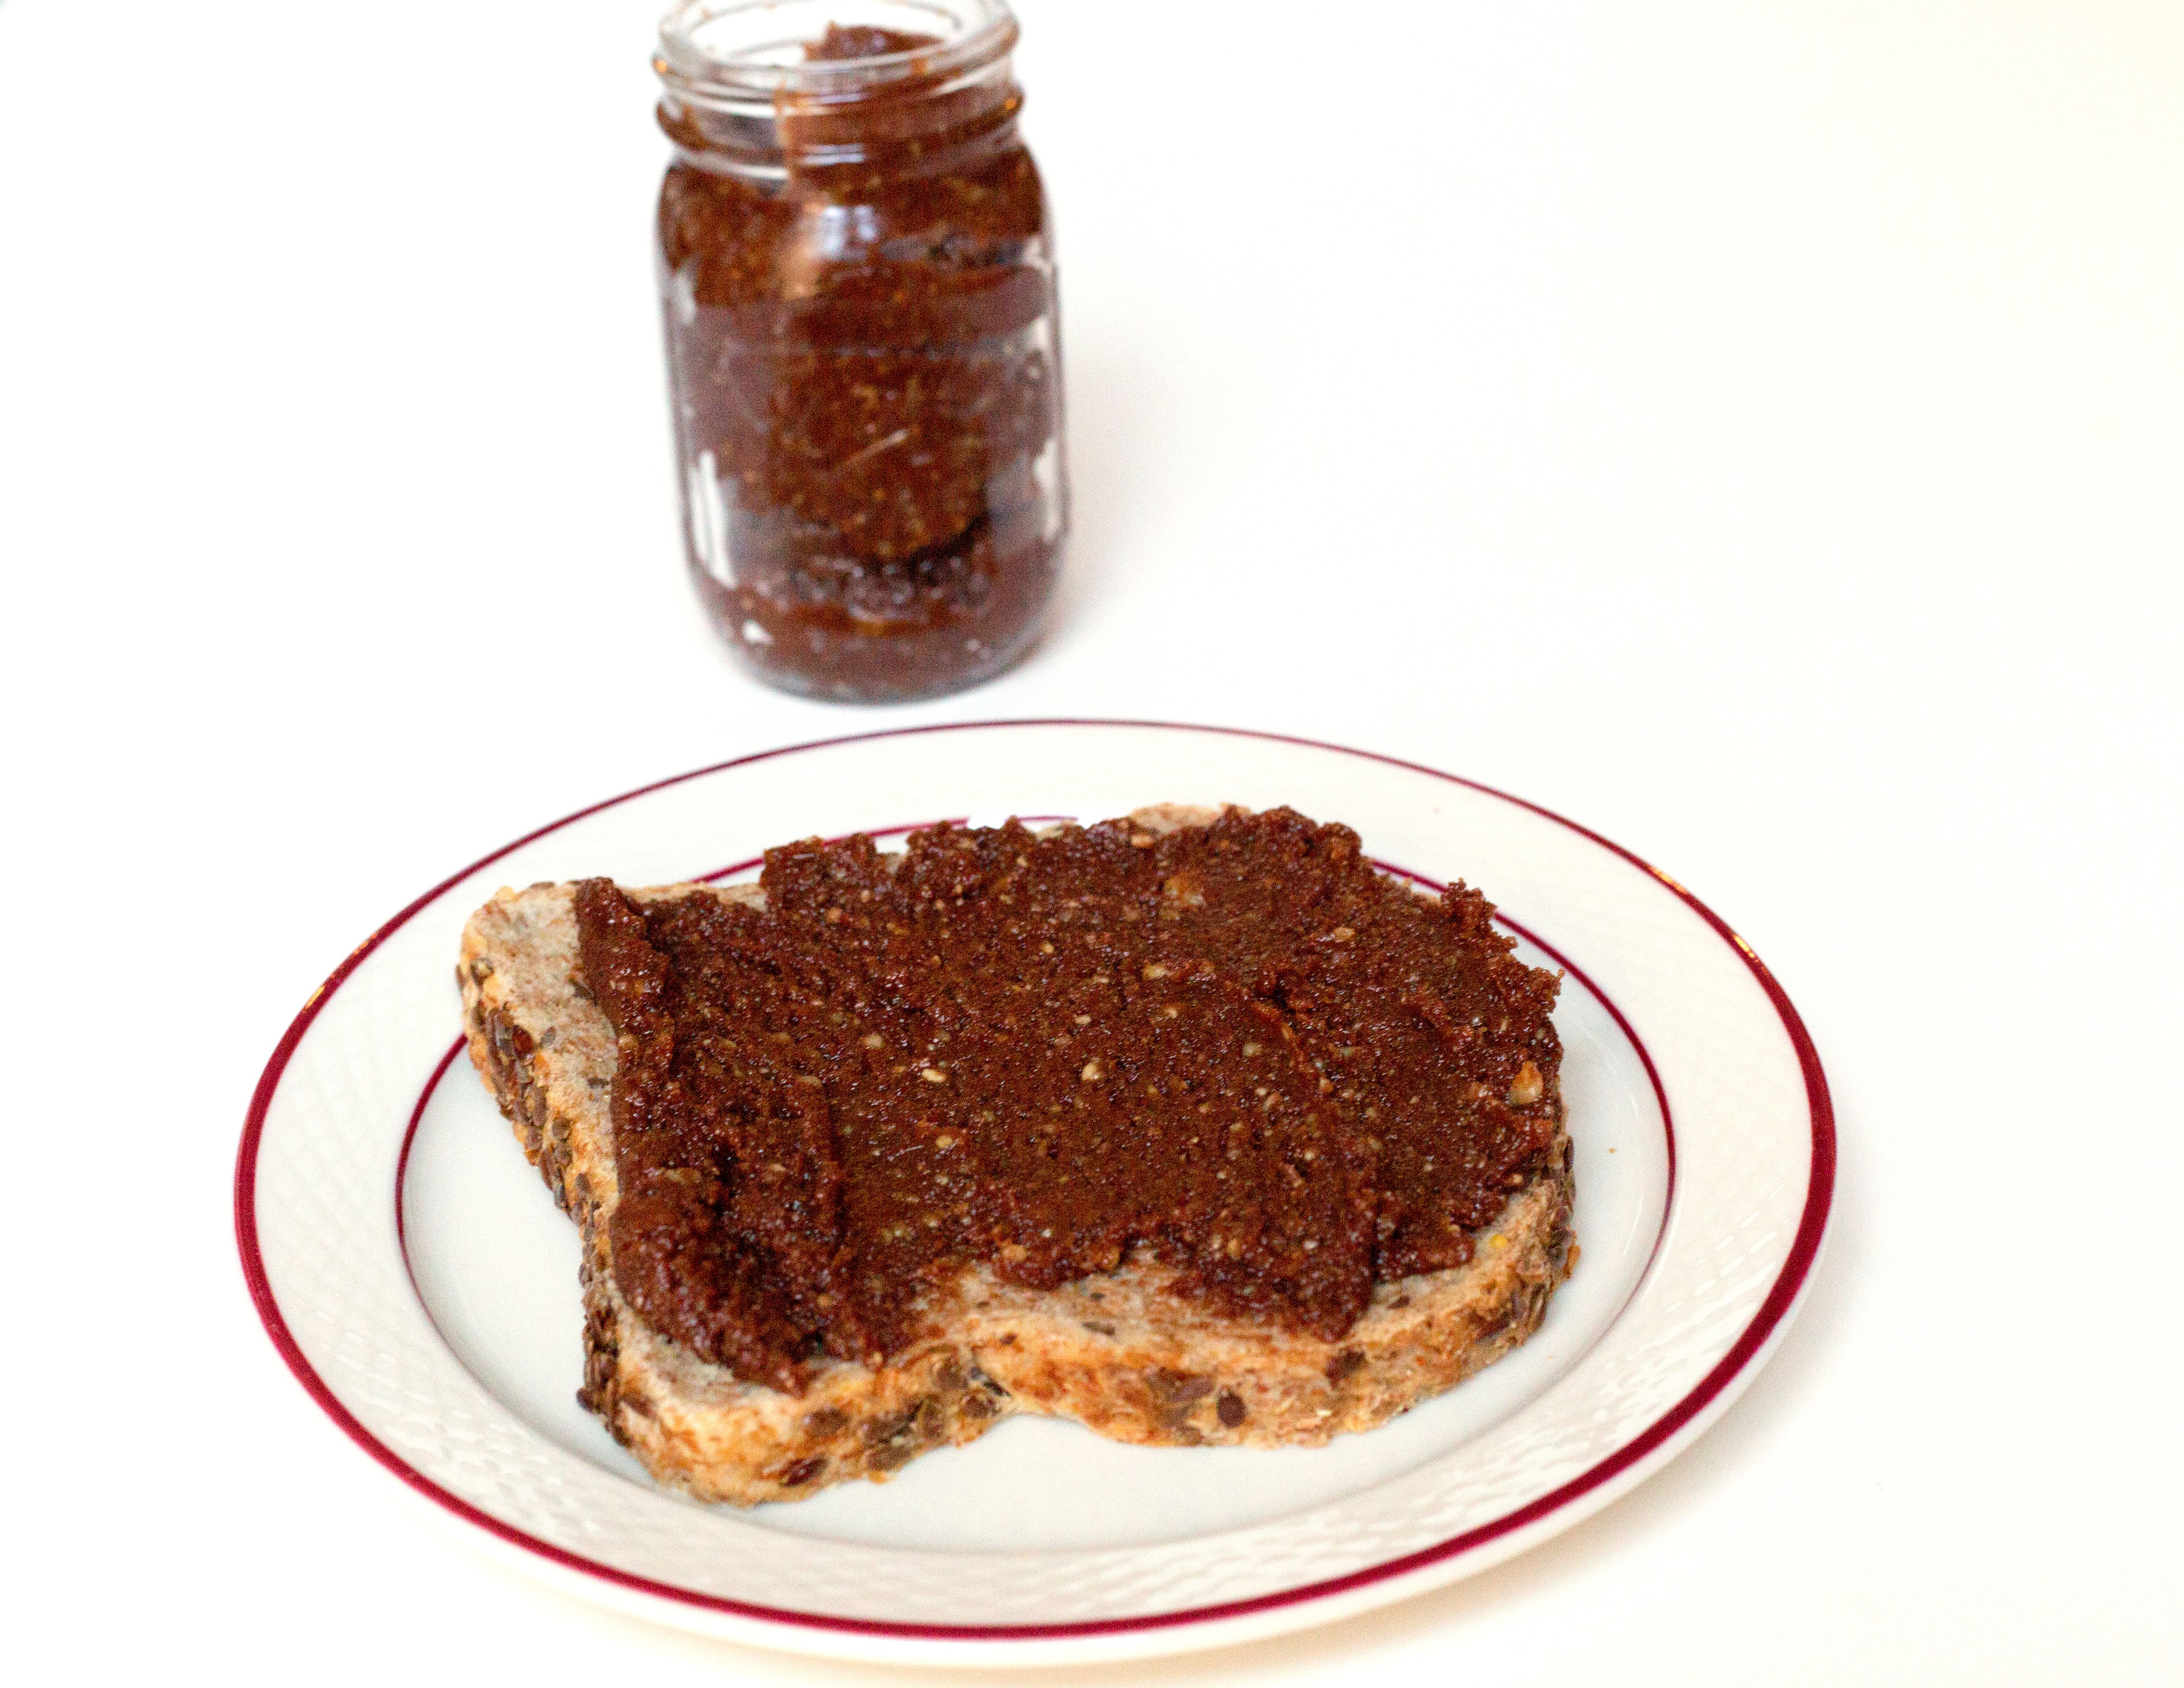 chocolate walnut butter on whole grain toast